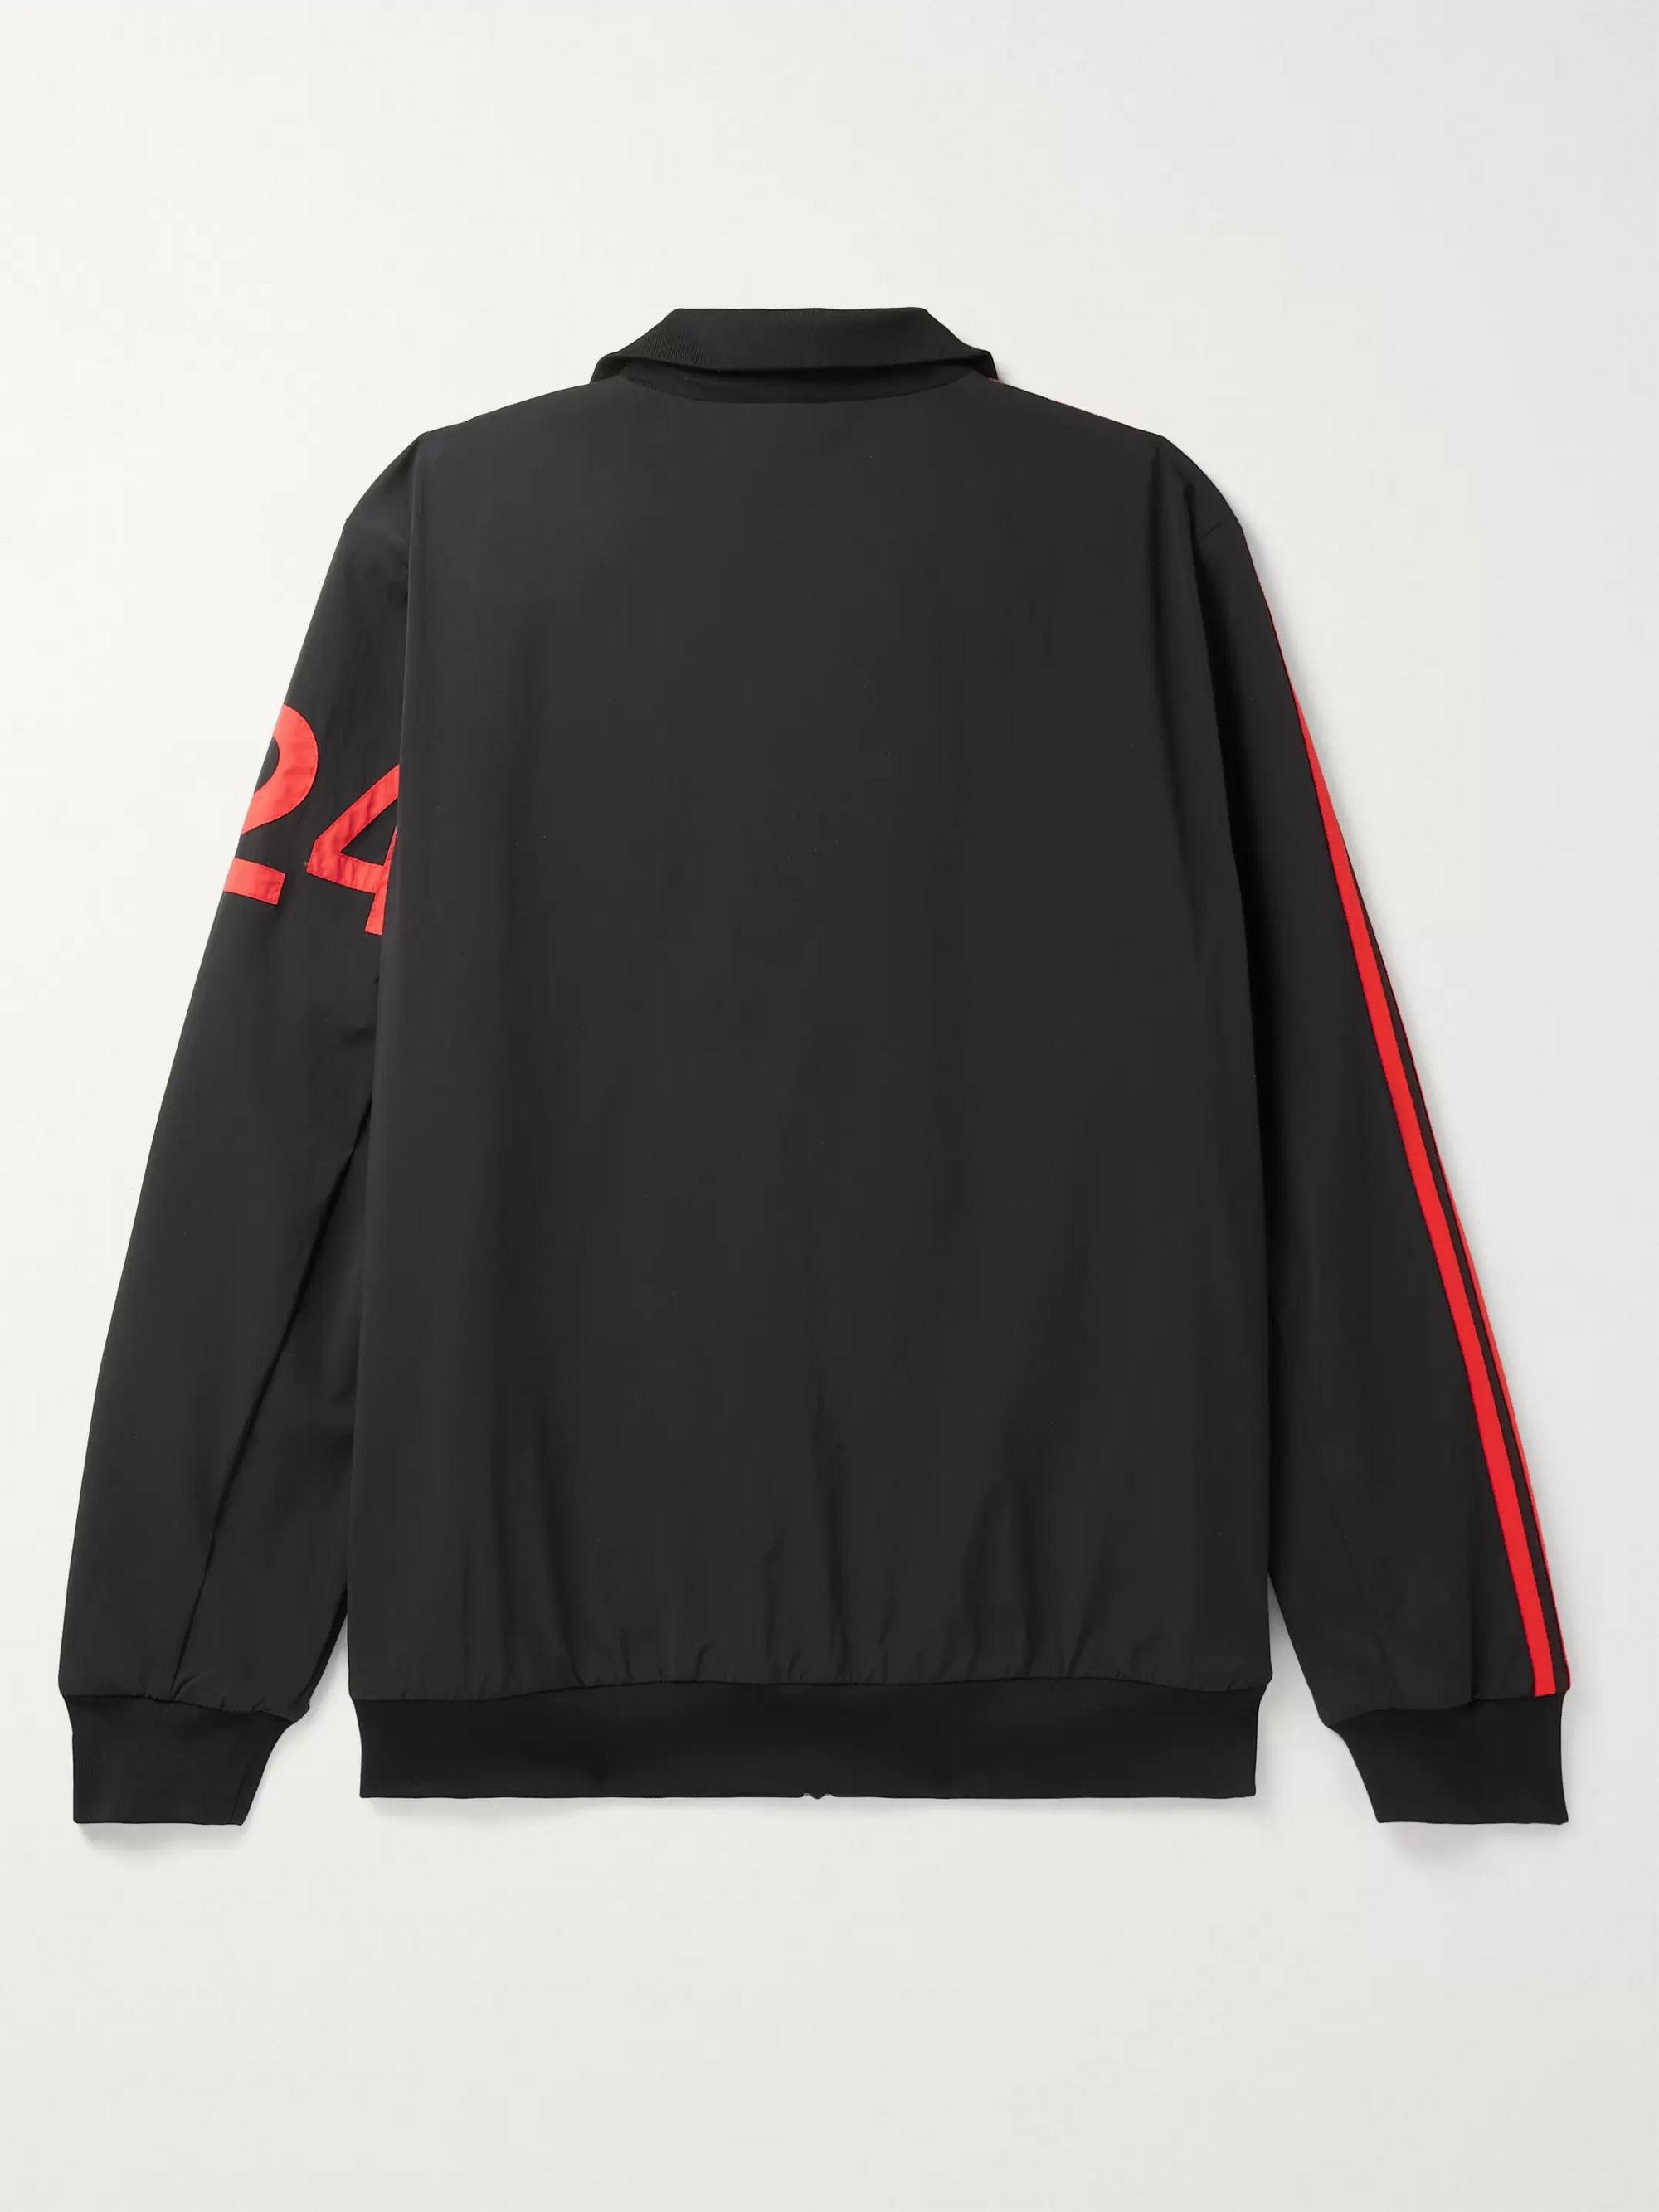 Black + 424 Logo-embroidered Striped Nylon-blend Track Jacket | Adidas Consortium